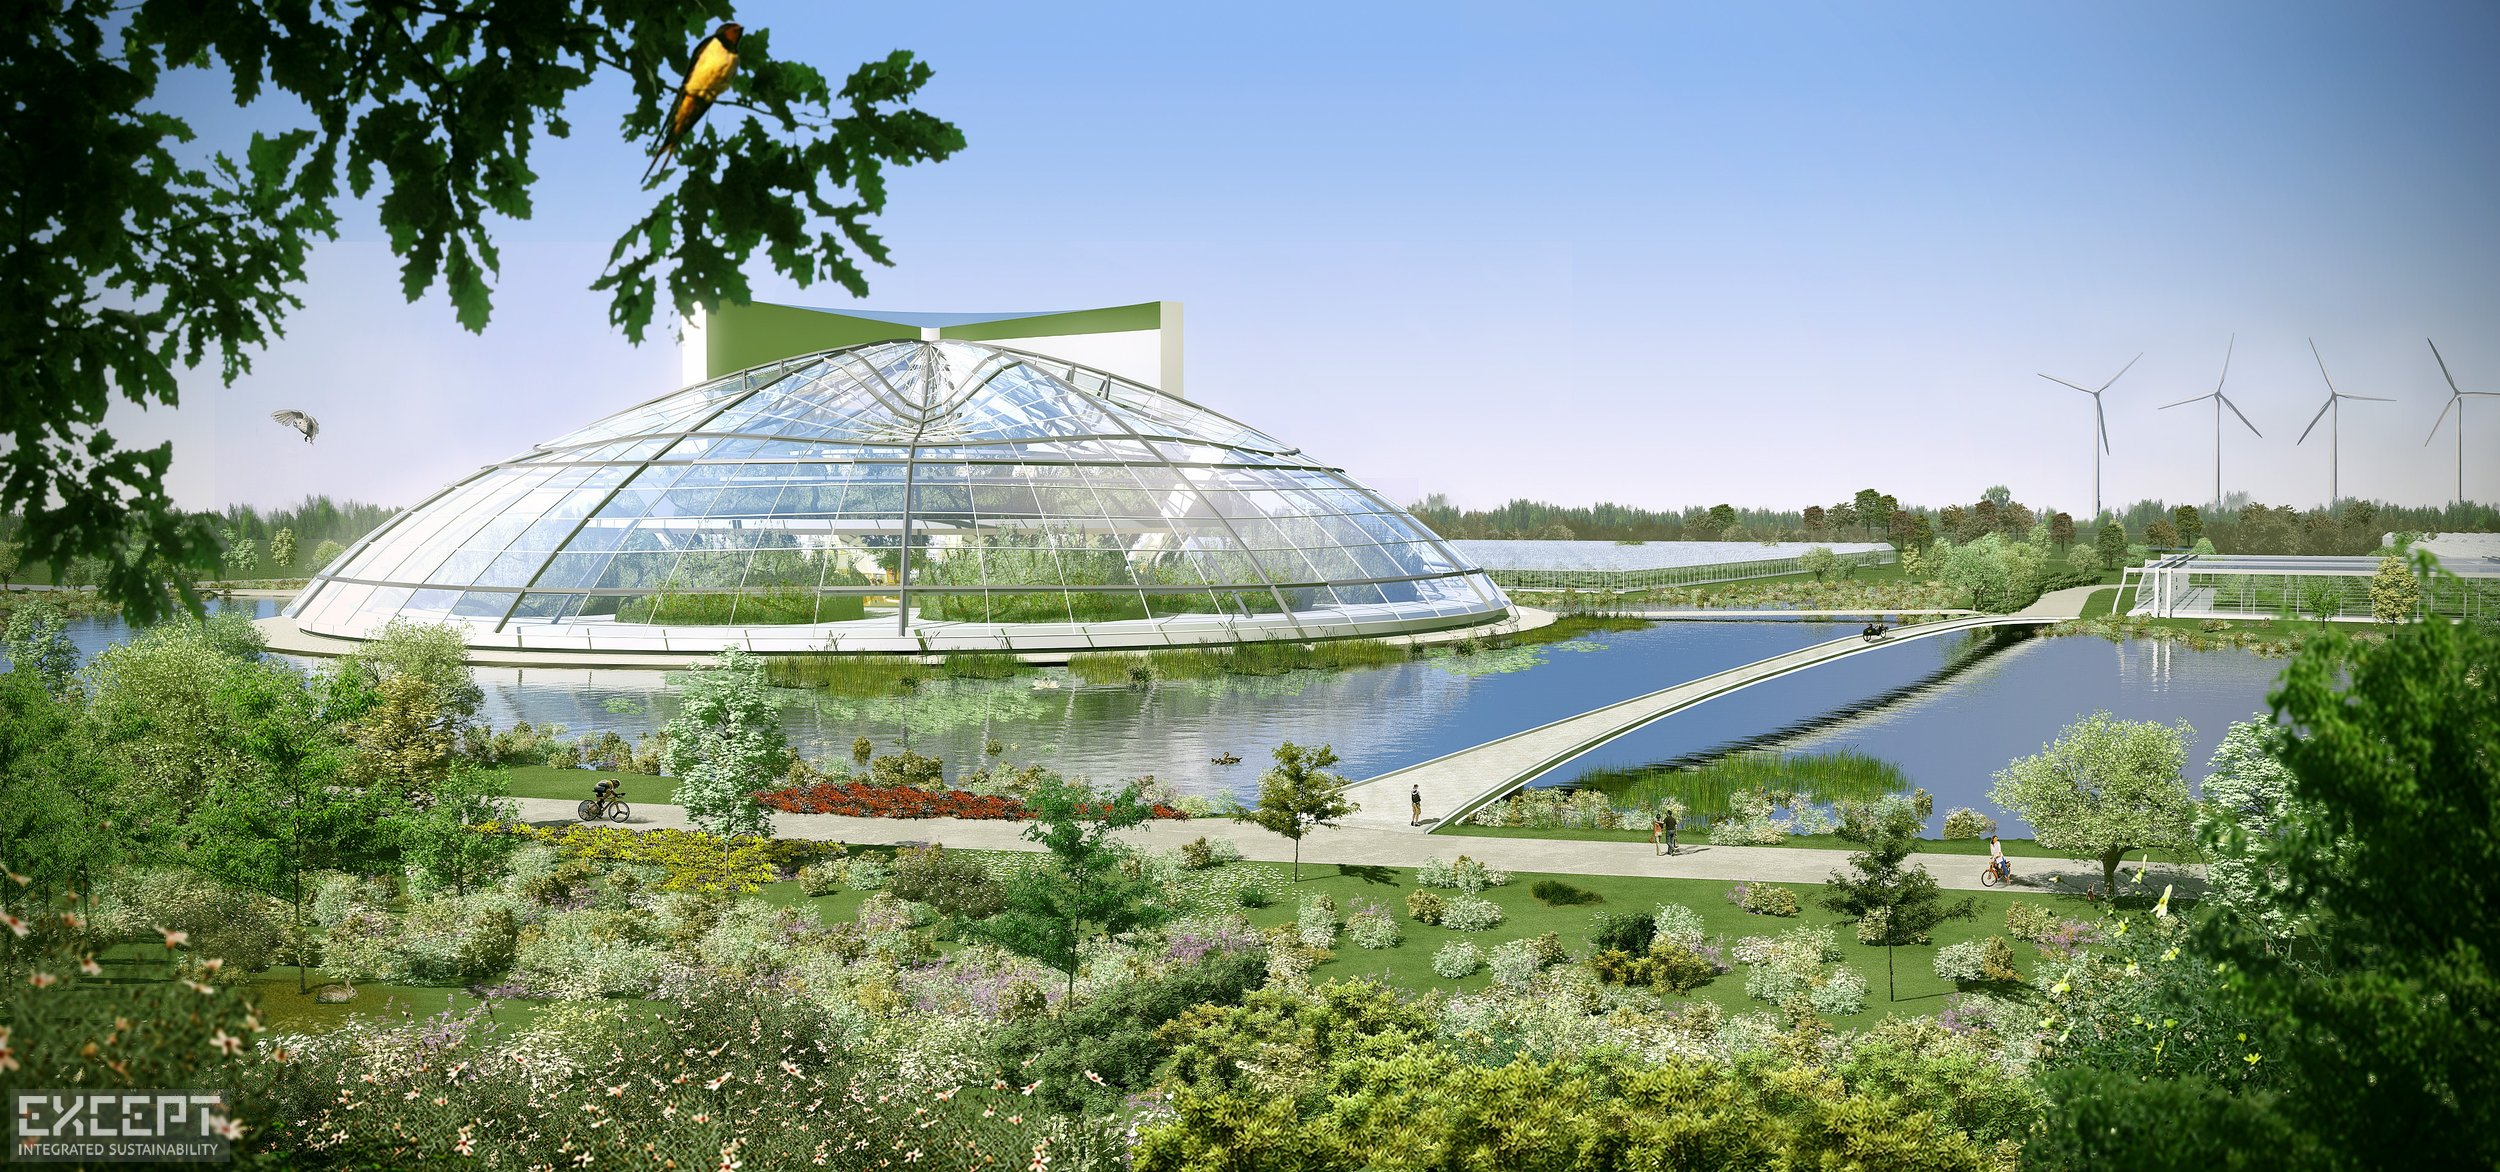 Greenhouse Modern Pavilion  - Greenhouse Landscape Water Bike Path